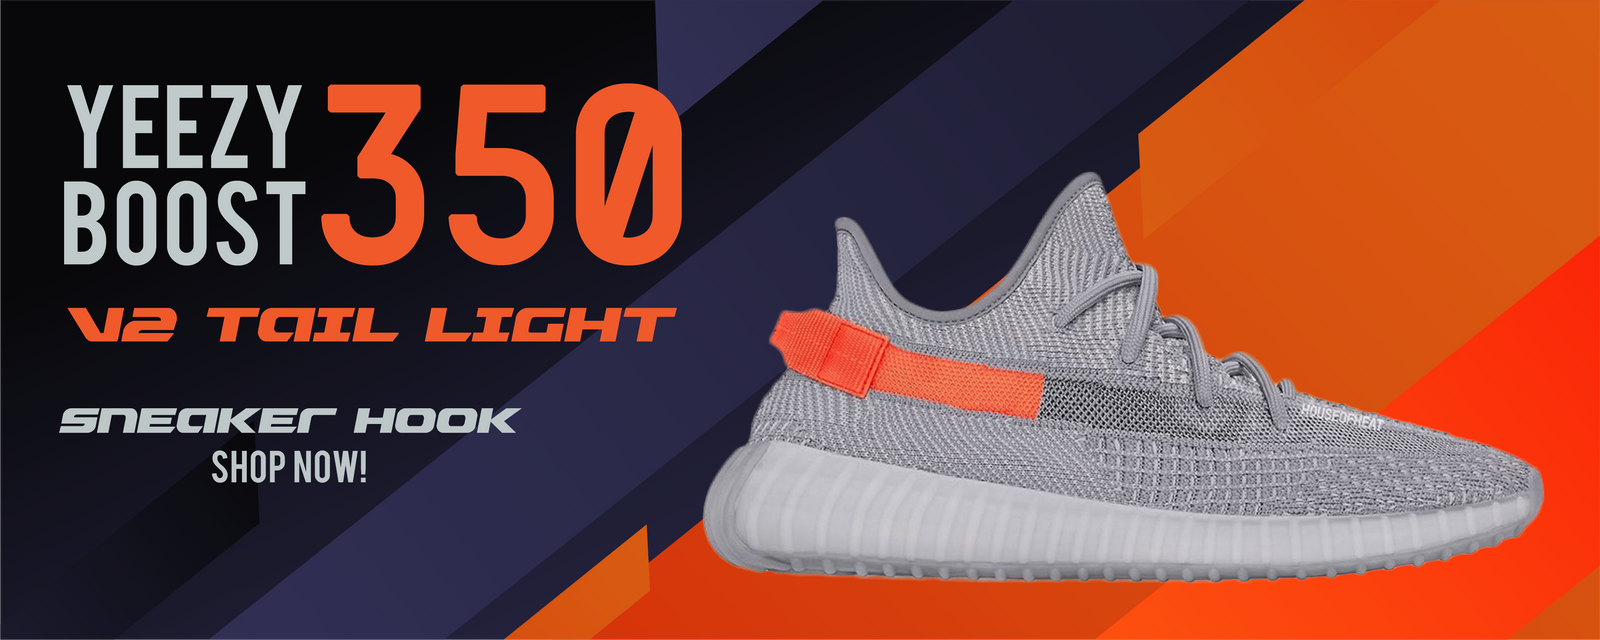 Yeezy Boost 350 V2 Tail Light Clothing to match Sneakers | Clothing to match Adidas Yeezy Boost 350 V2 Tail Light Shoes